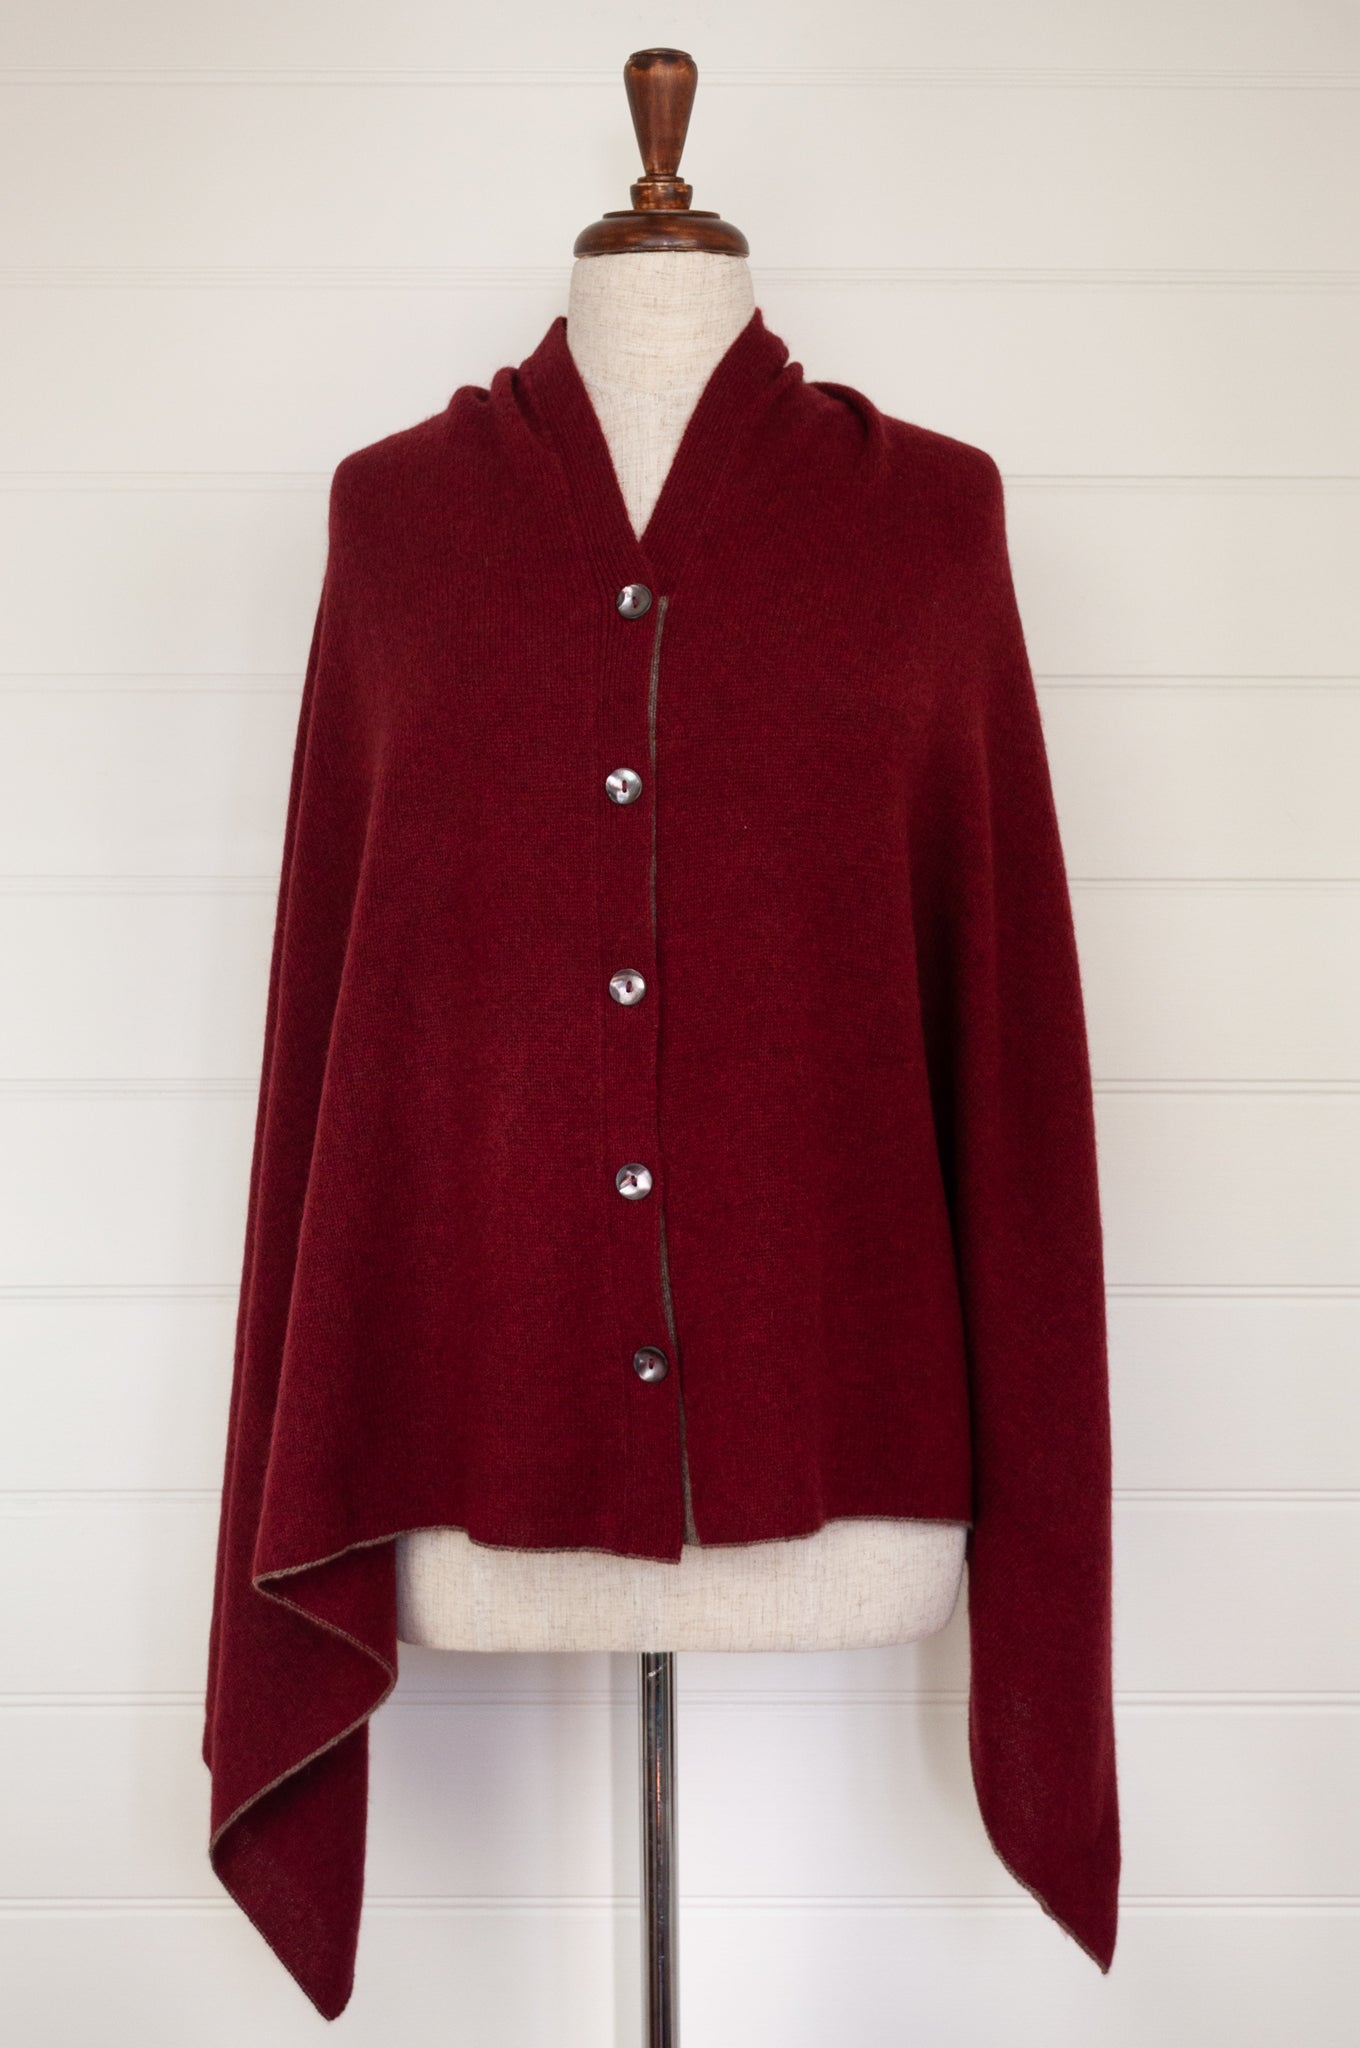 Juniper Hearth baby yak poncho in Cherry Red.